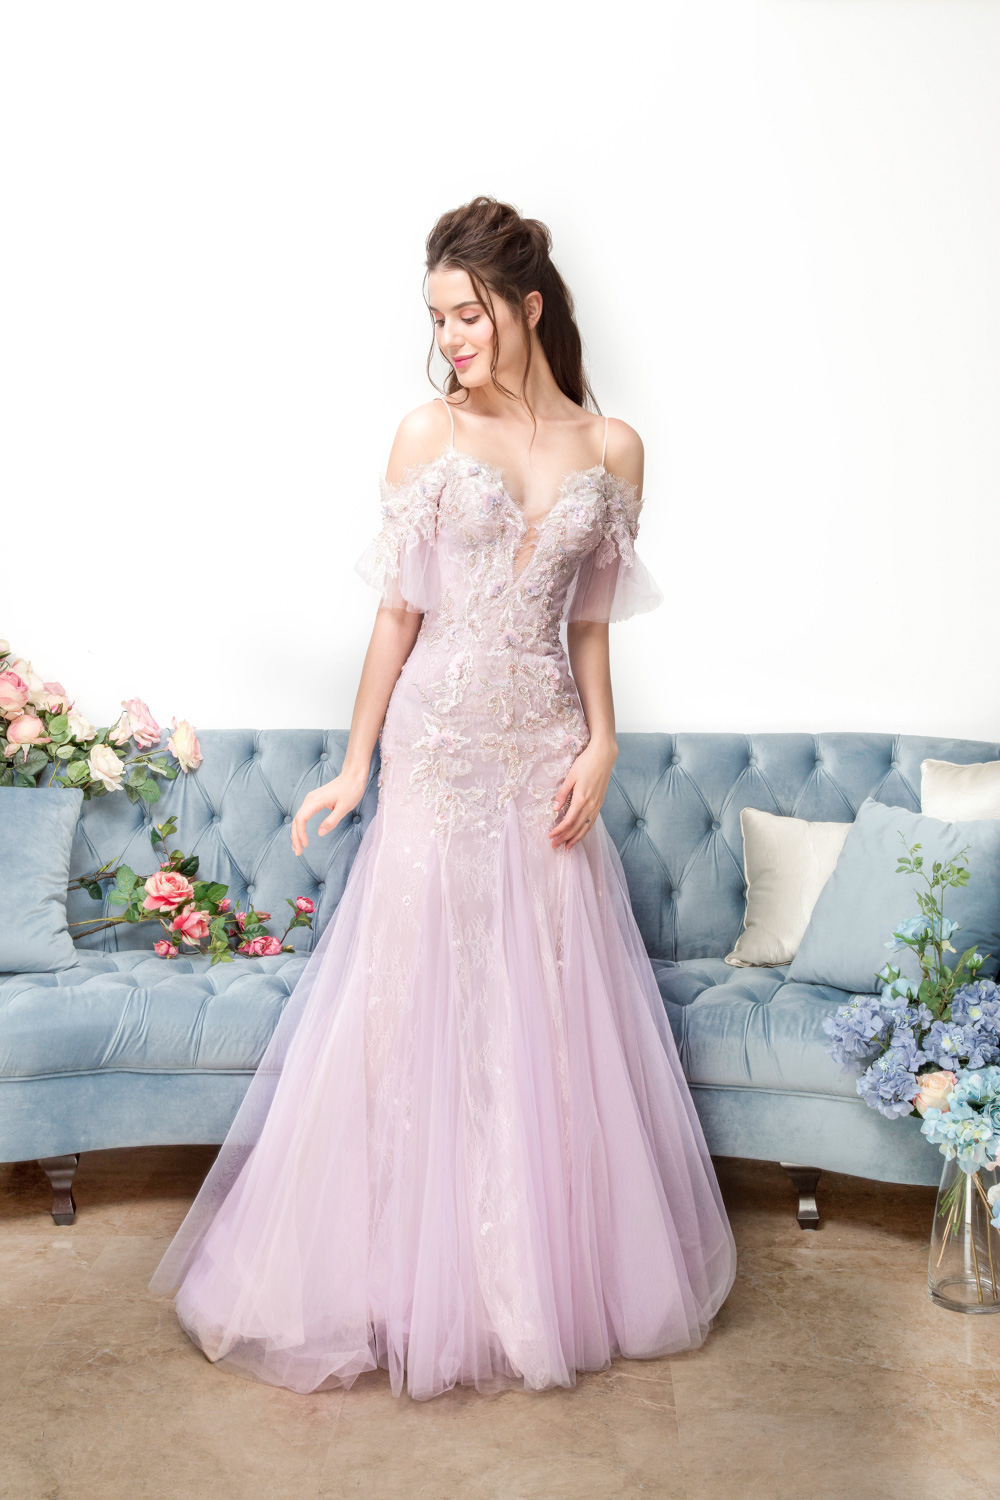 Off the shoulder fit and flare evening gown by CCM Wedding